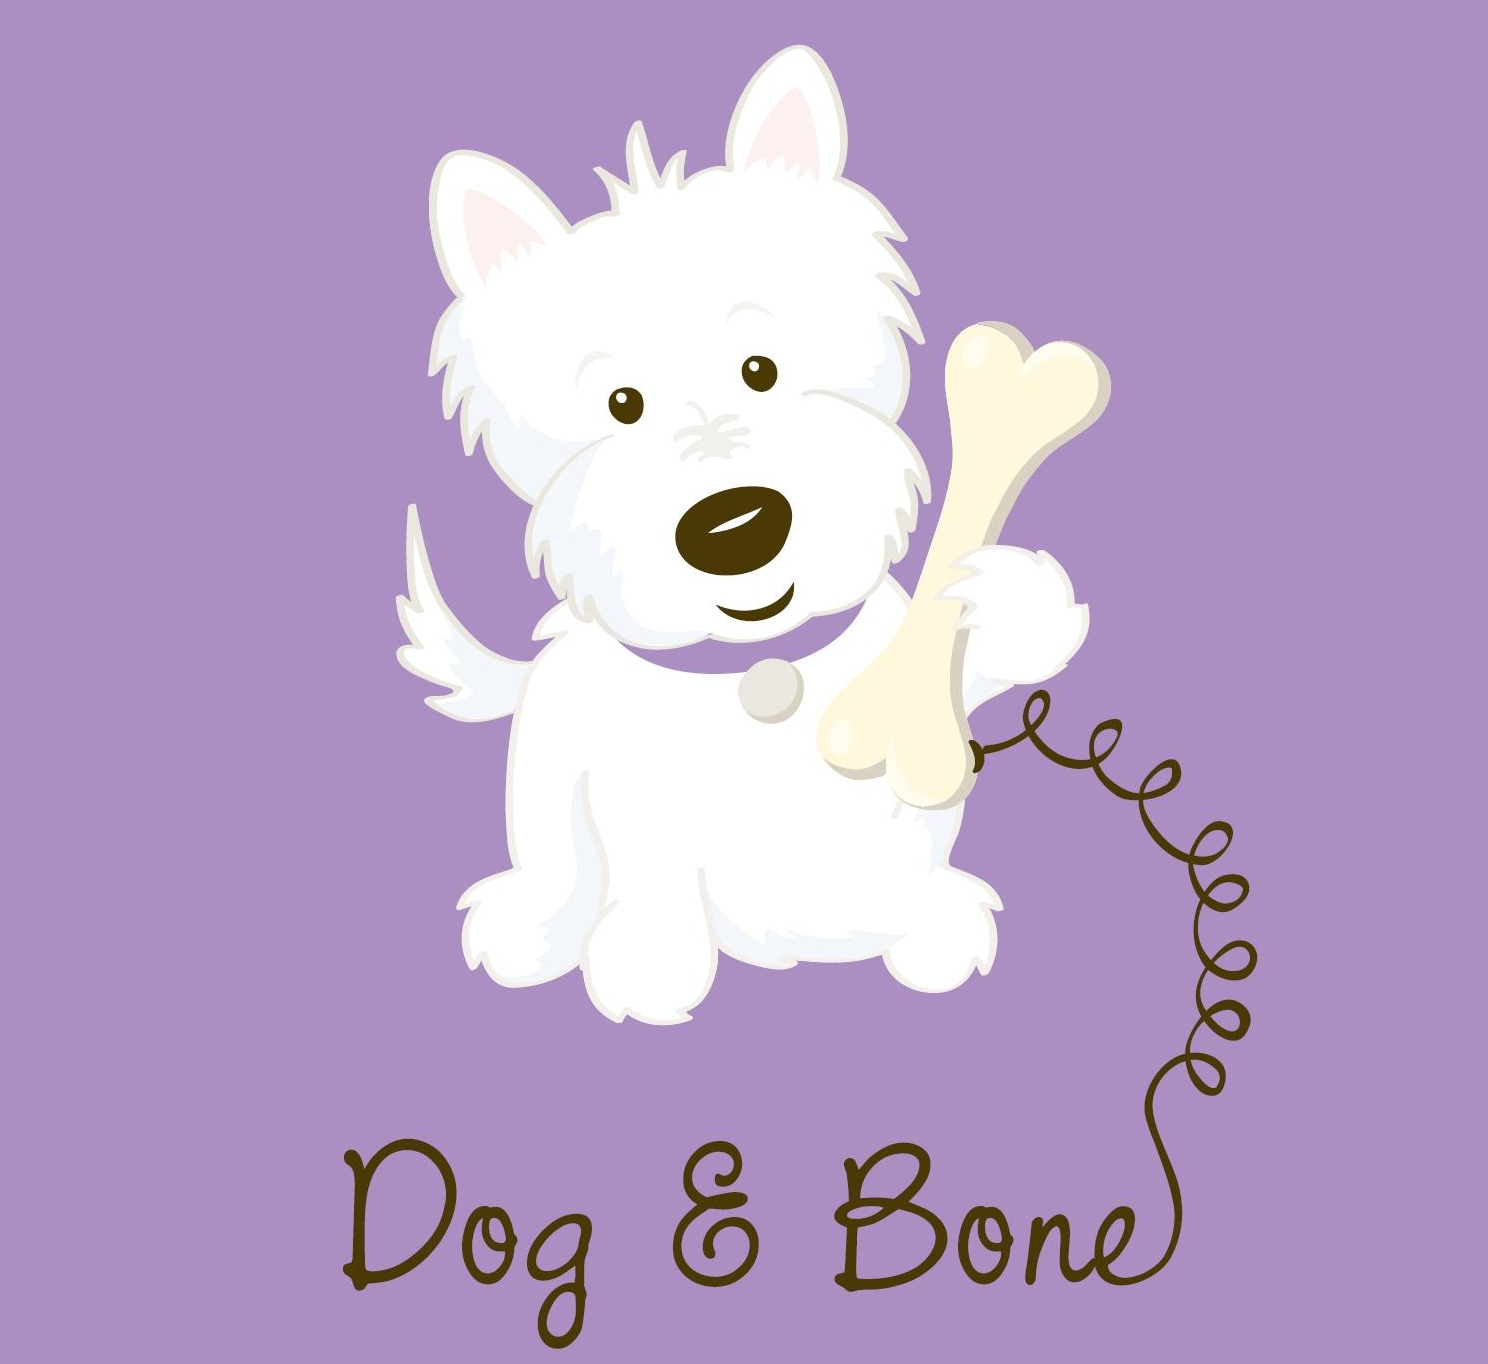 Dog and Bone Dog Grooming Services